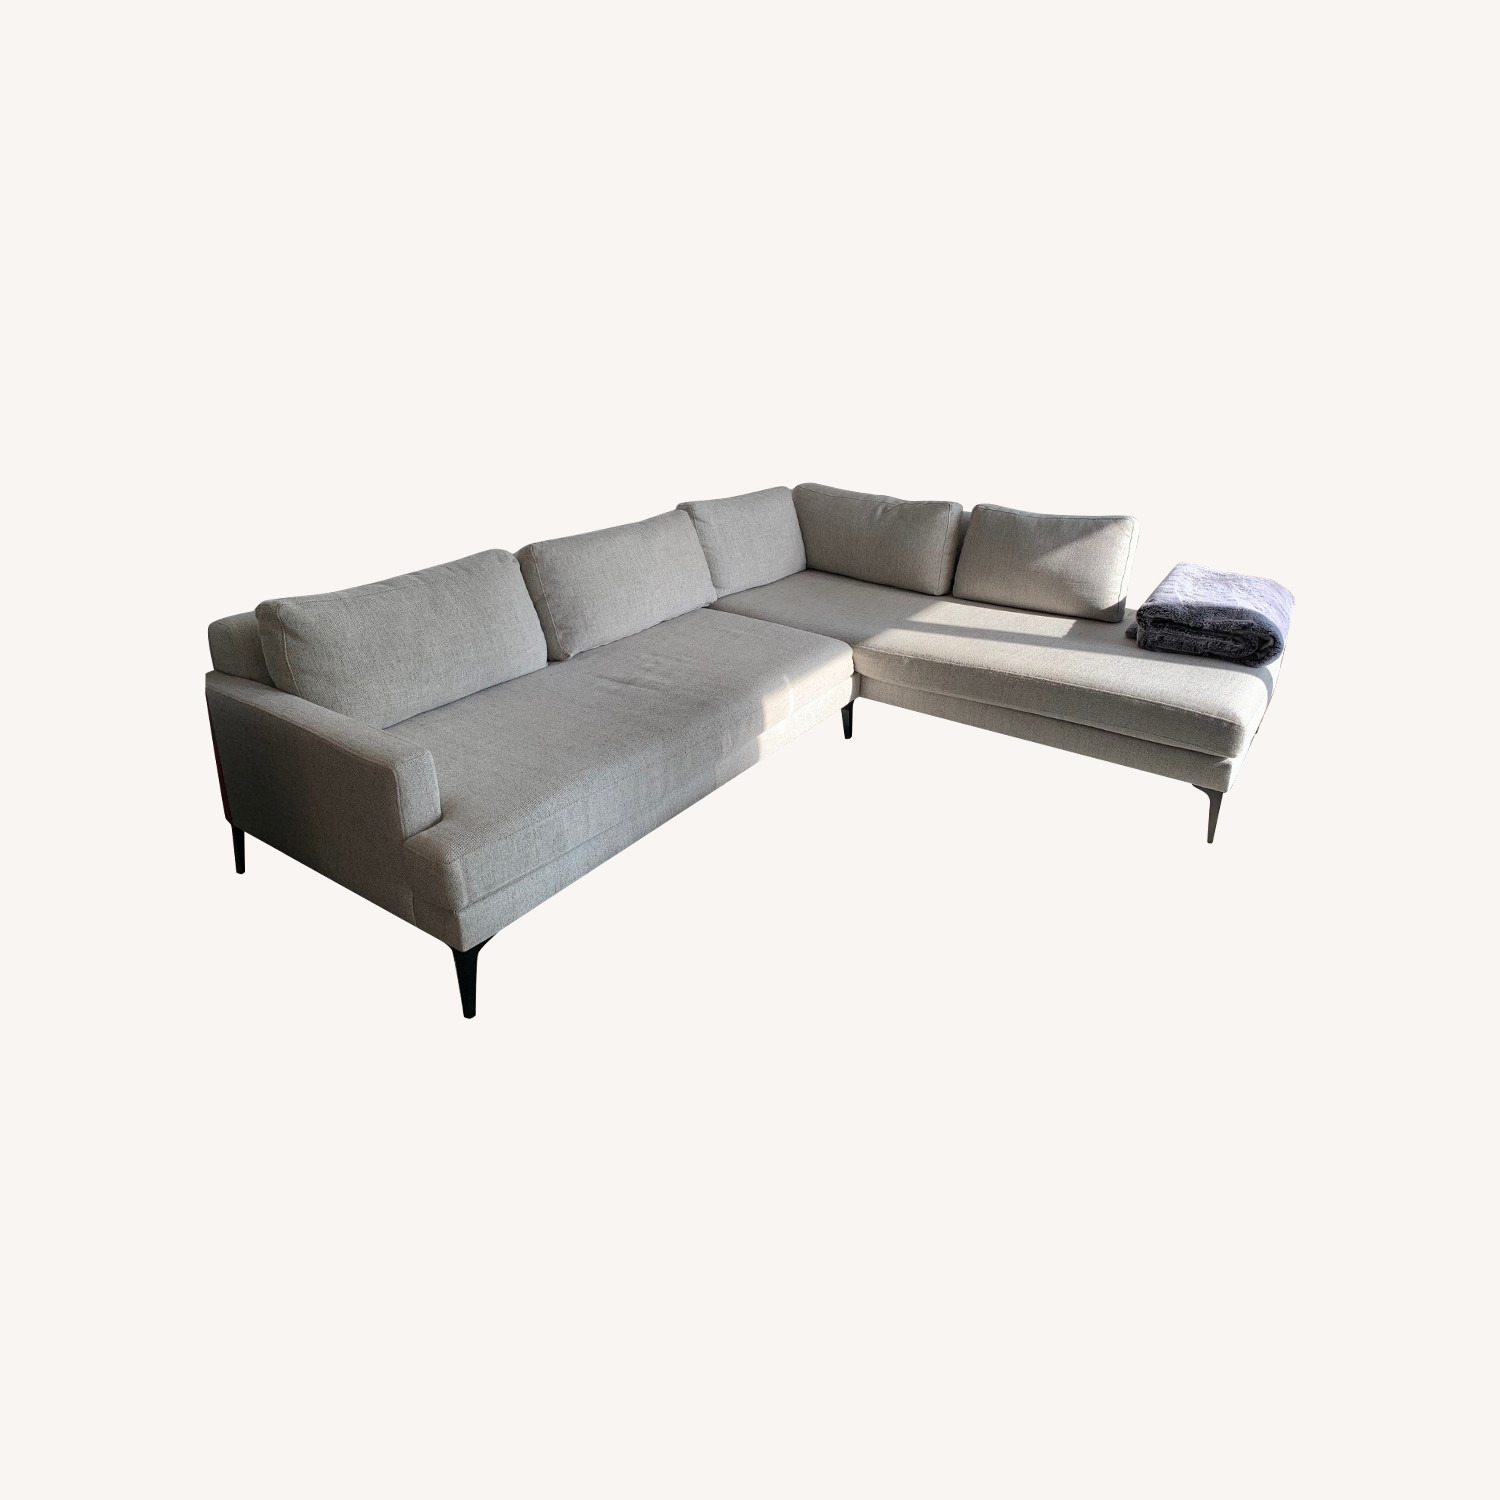 West Elm Grey Andes Right 2-Piece Chaise Sectional - image-0